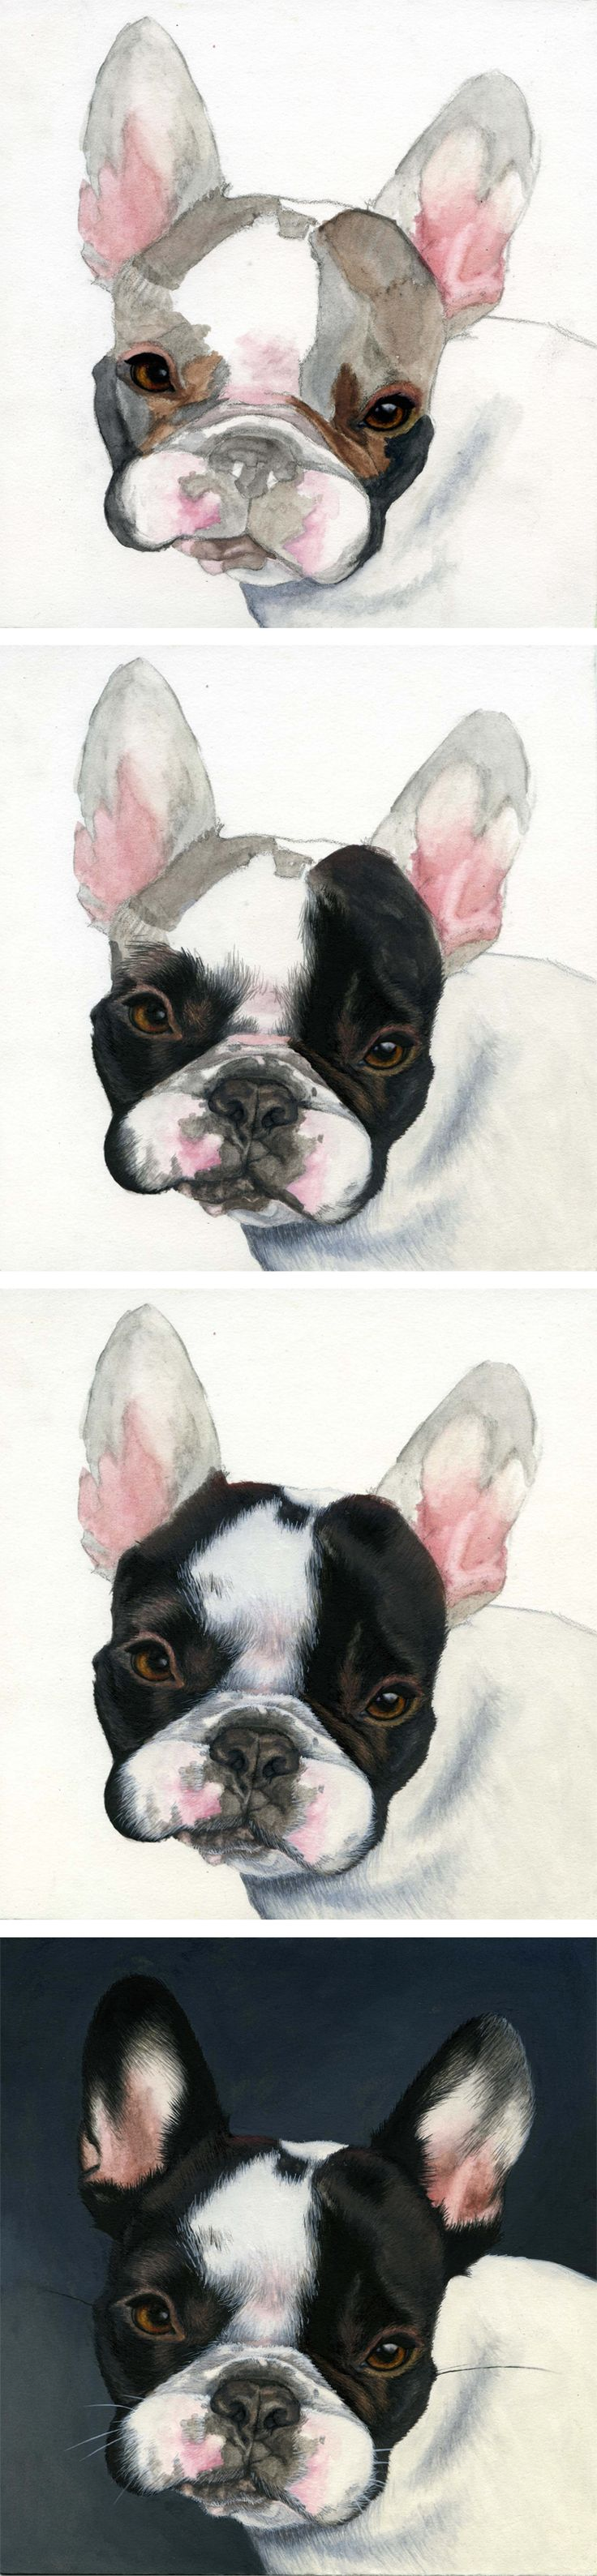 This is Henry, a French Bulldog puppy. The progression of my gouache painting as it went from a simple sketch to the finished work of art. To have a portrait painted of your pet, visit leahdaviesart.com